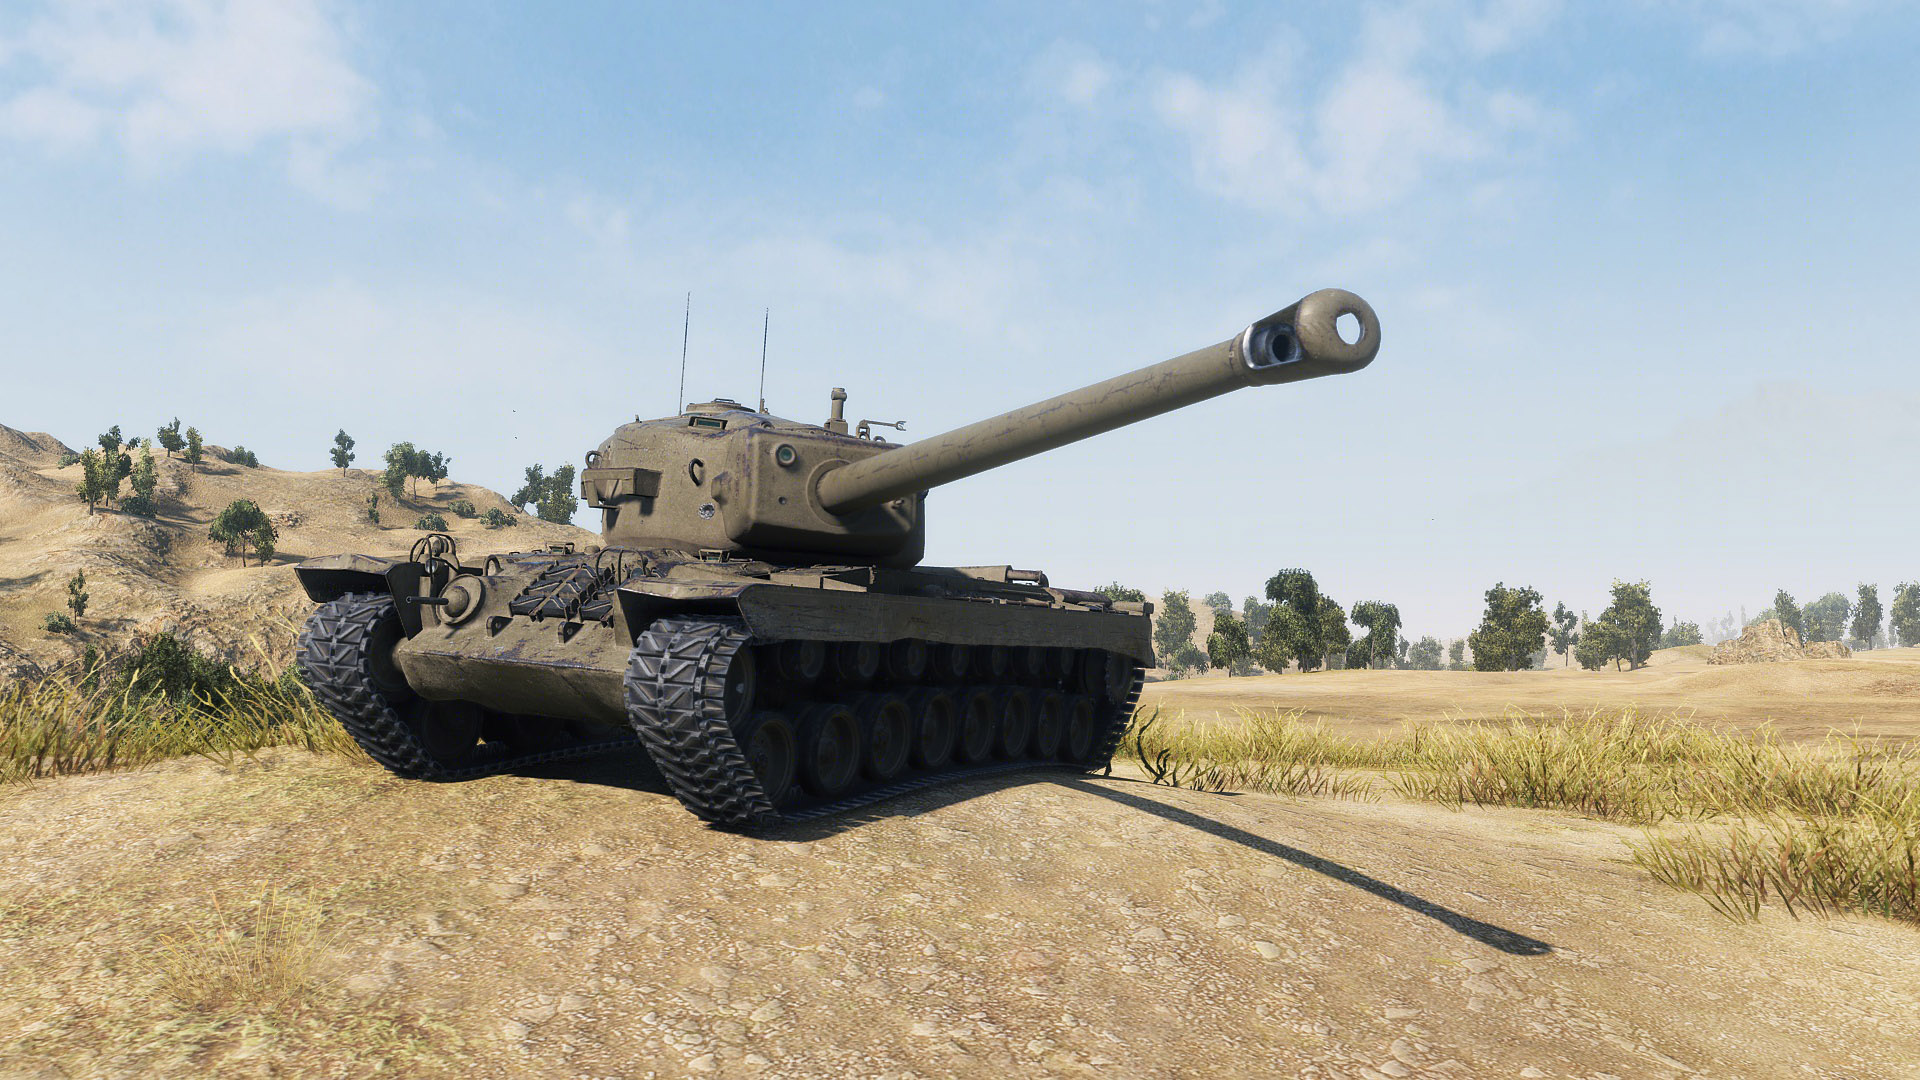 When buying an account in the hangar, the following technique will be present: premium technology : löwe, t34, kv-5